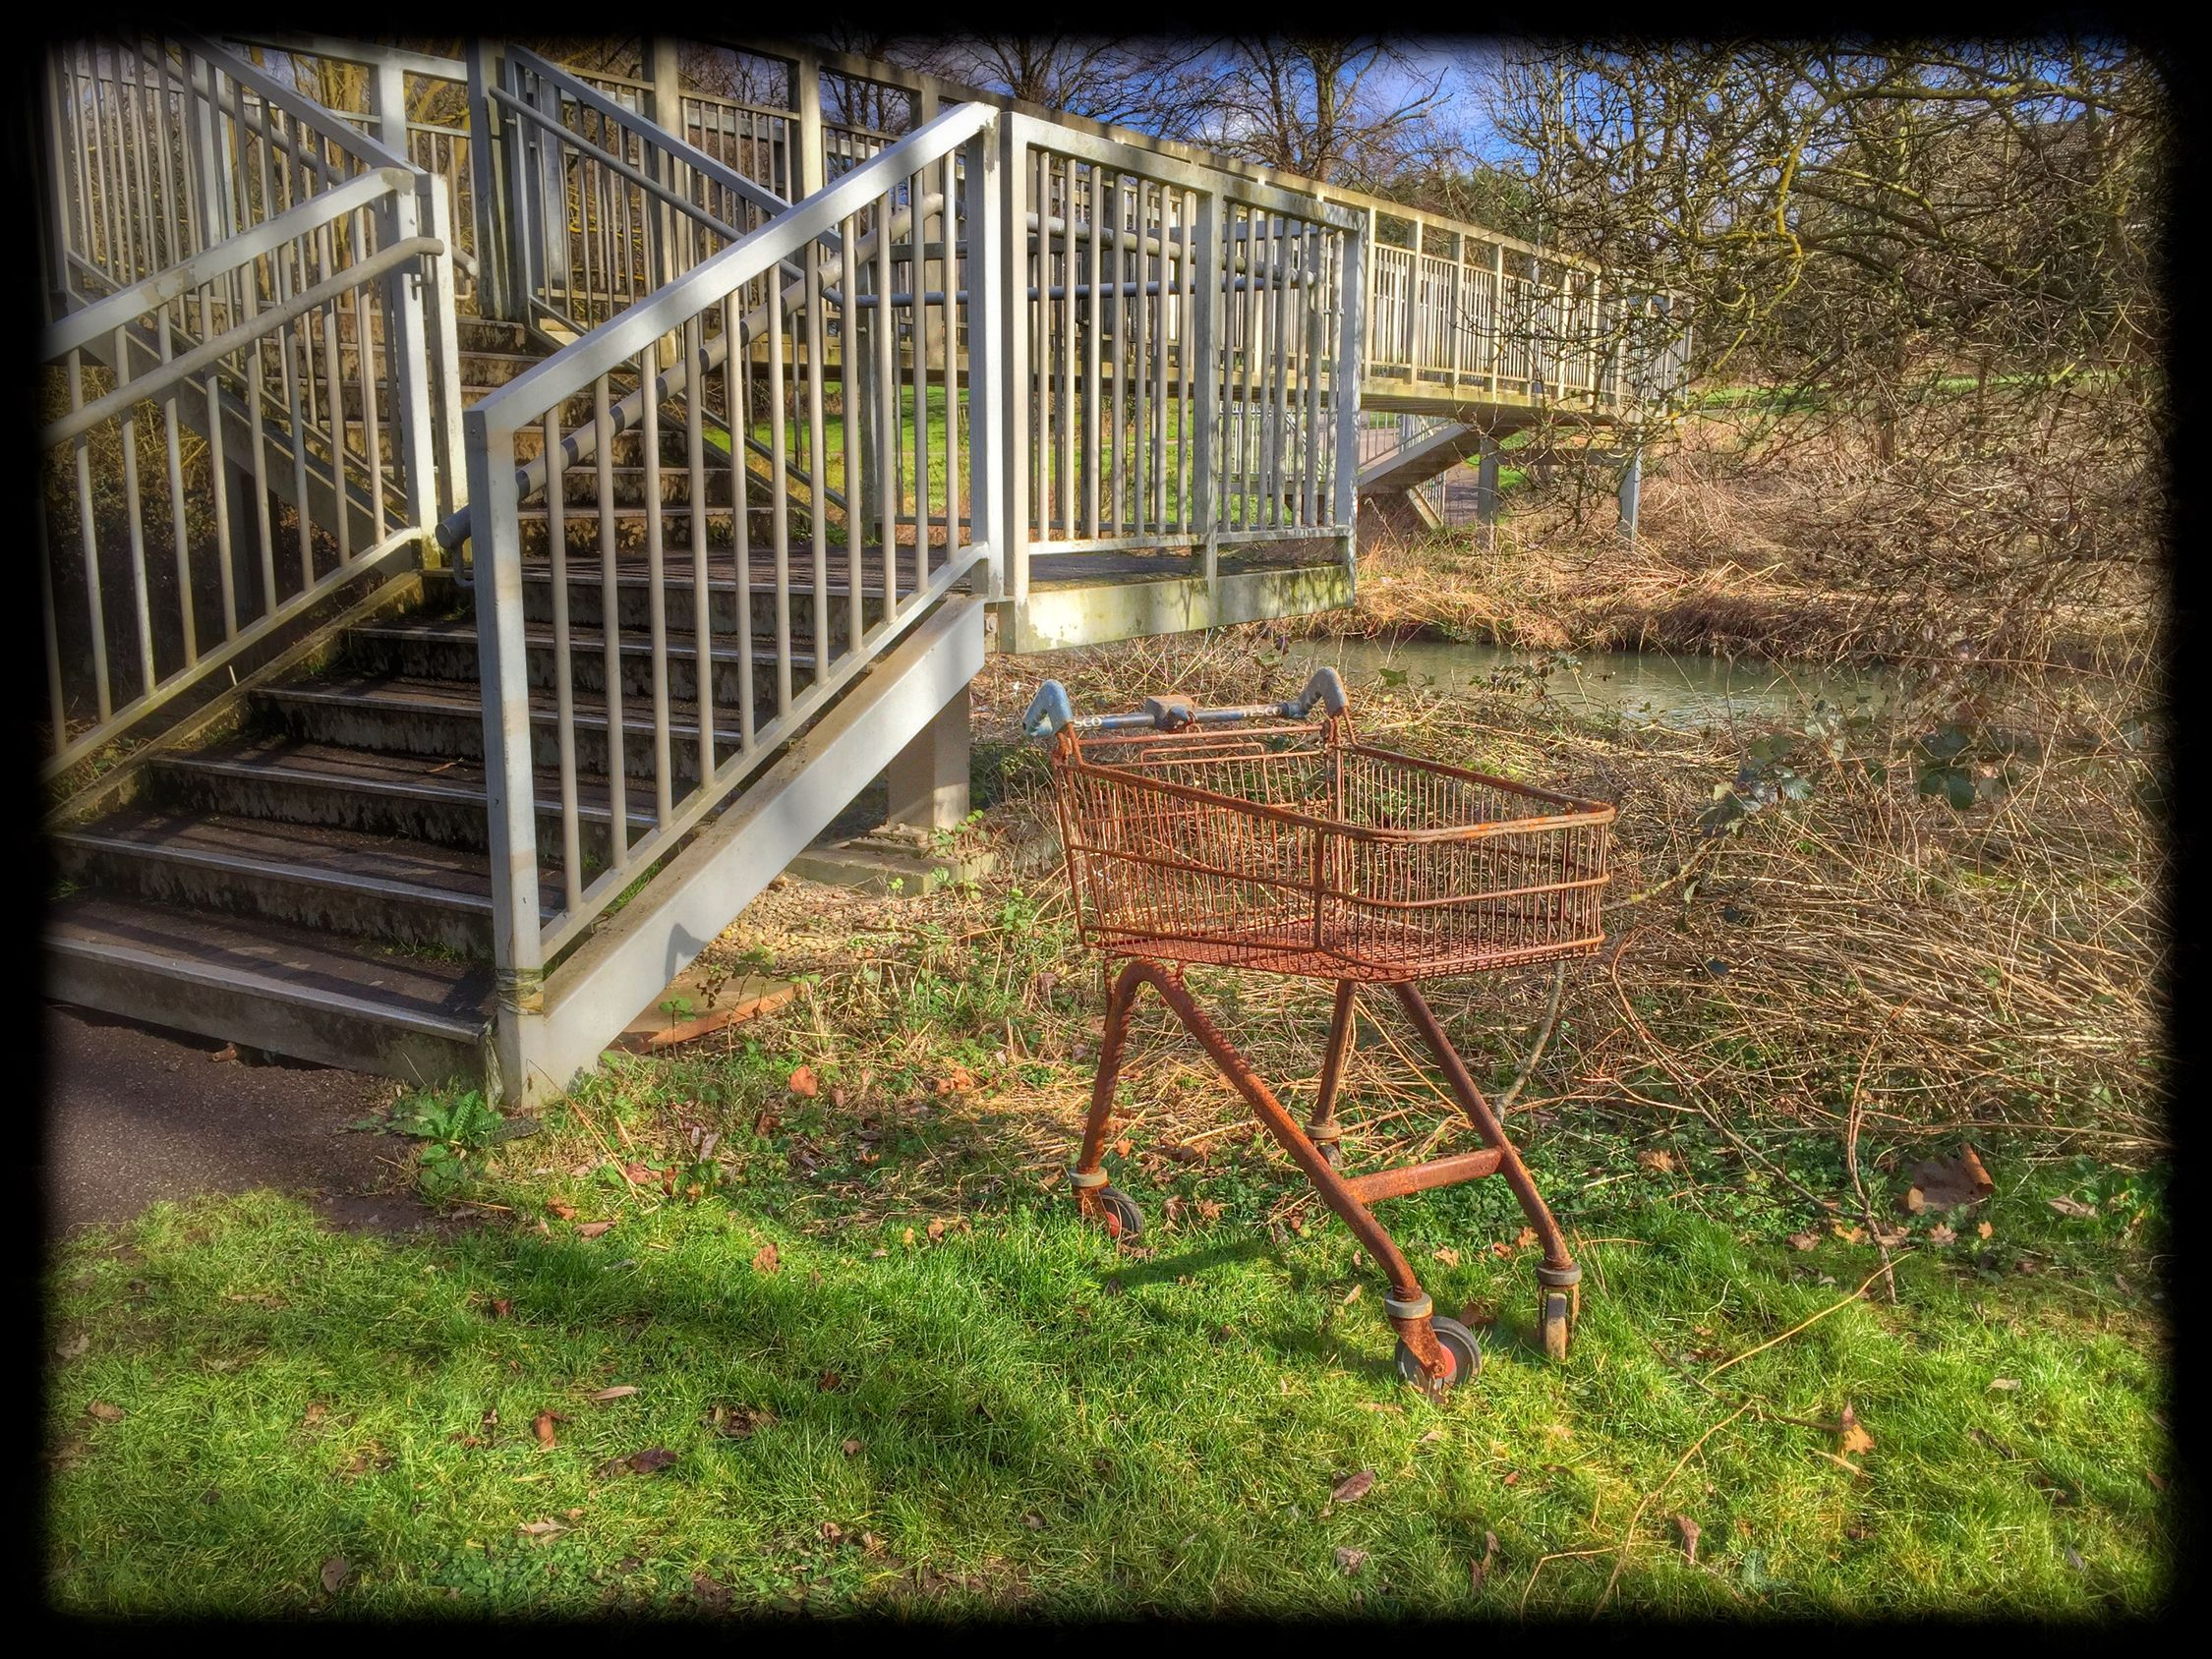 Rusty Shopping Trolley by a River Bridge